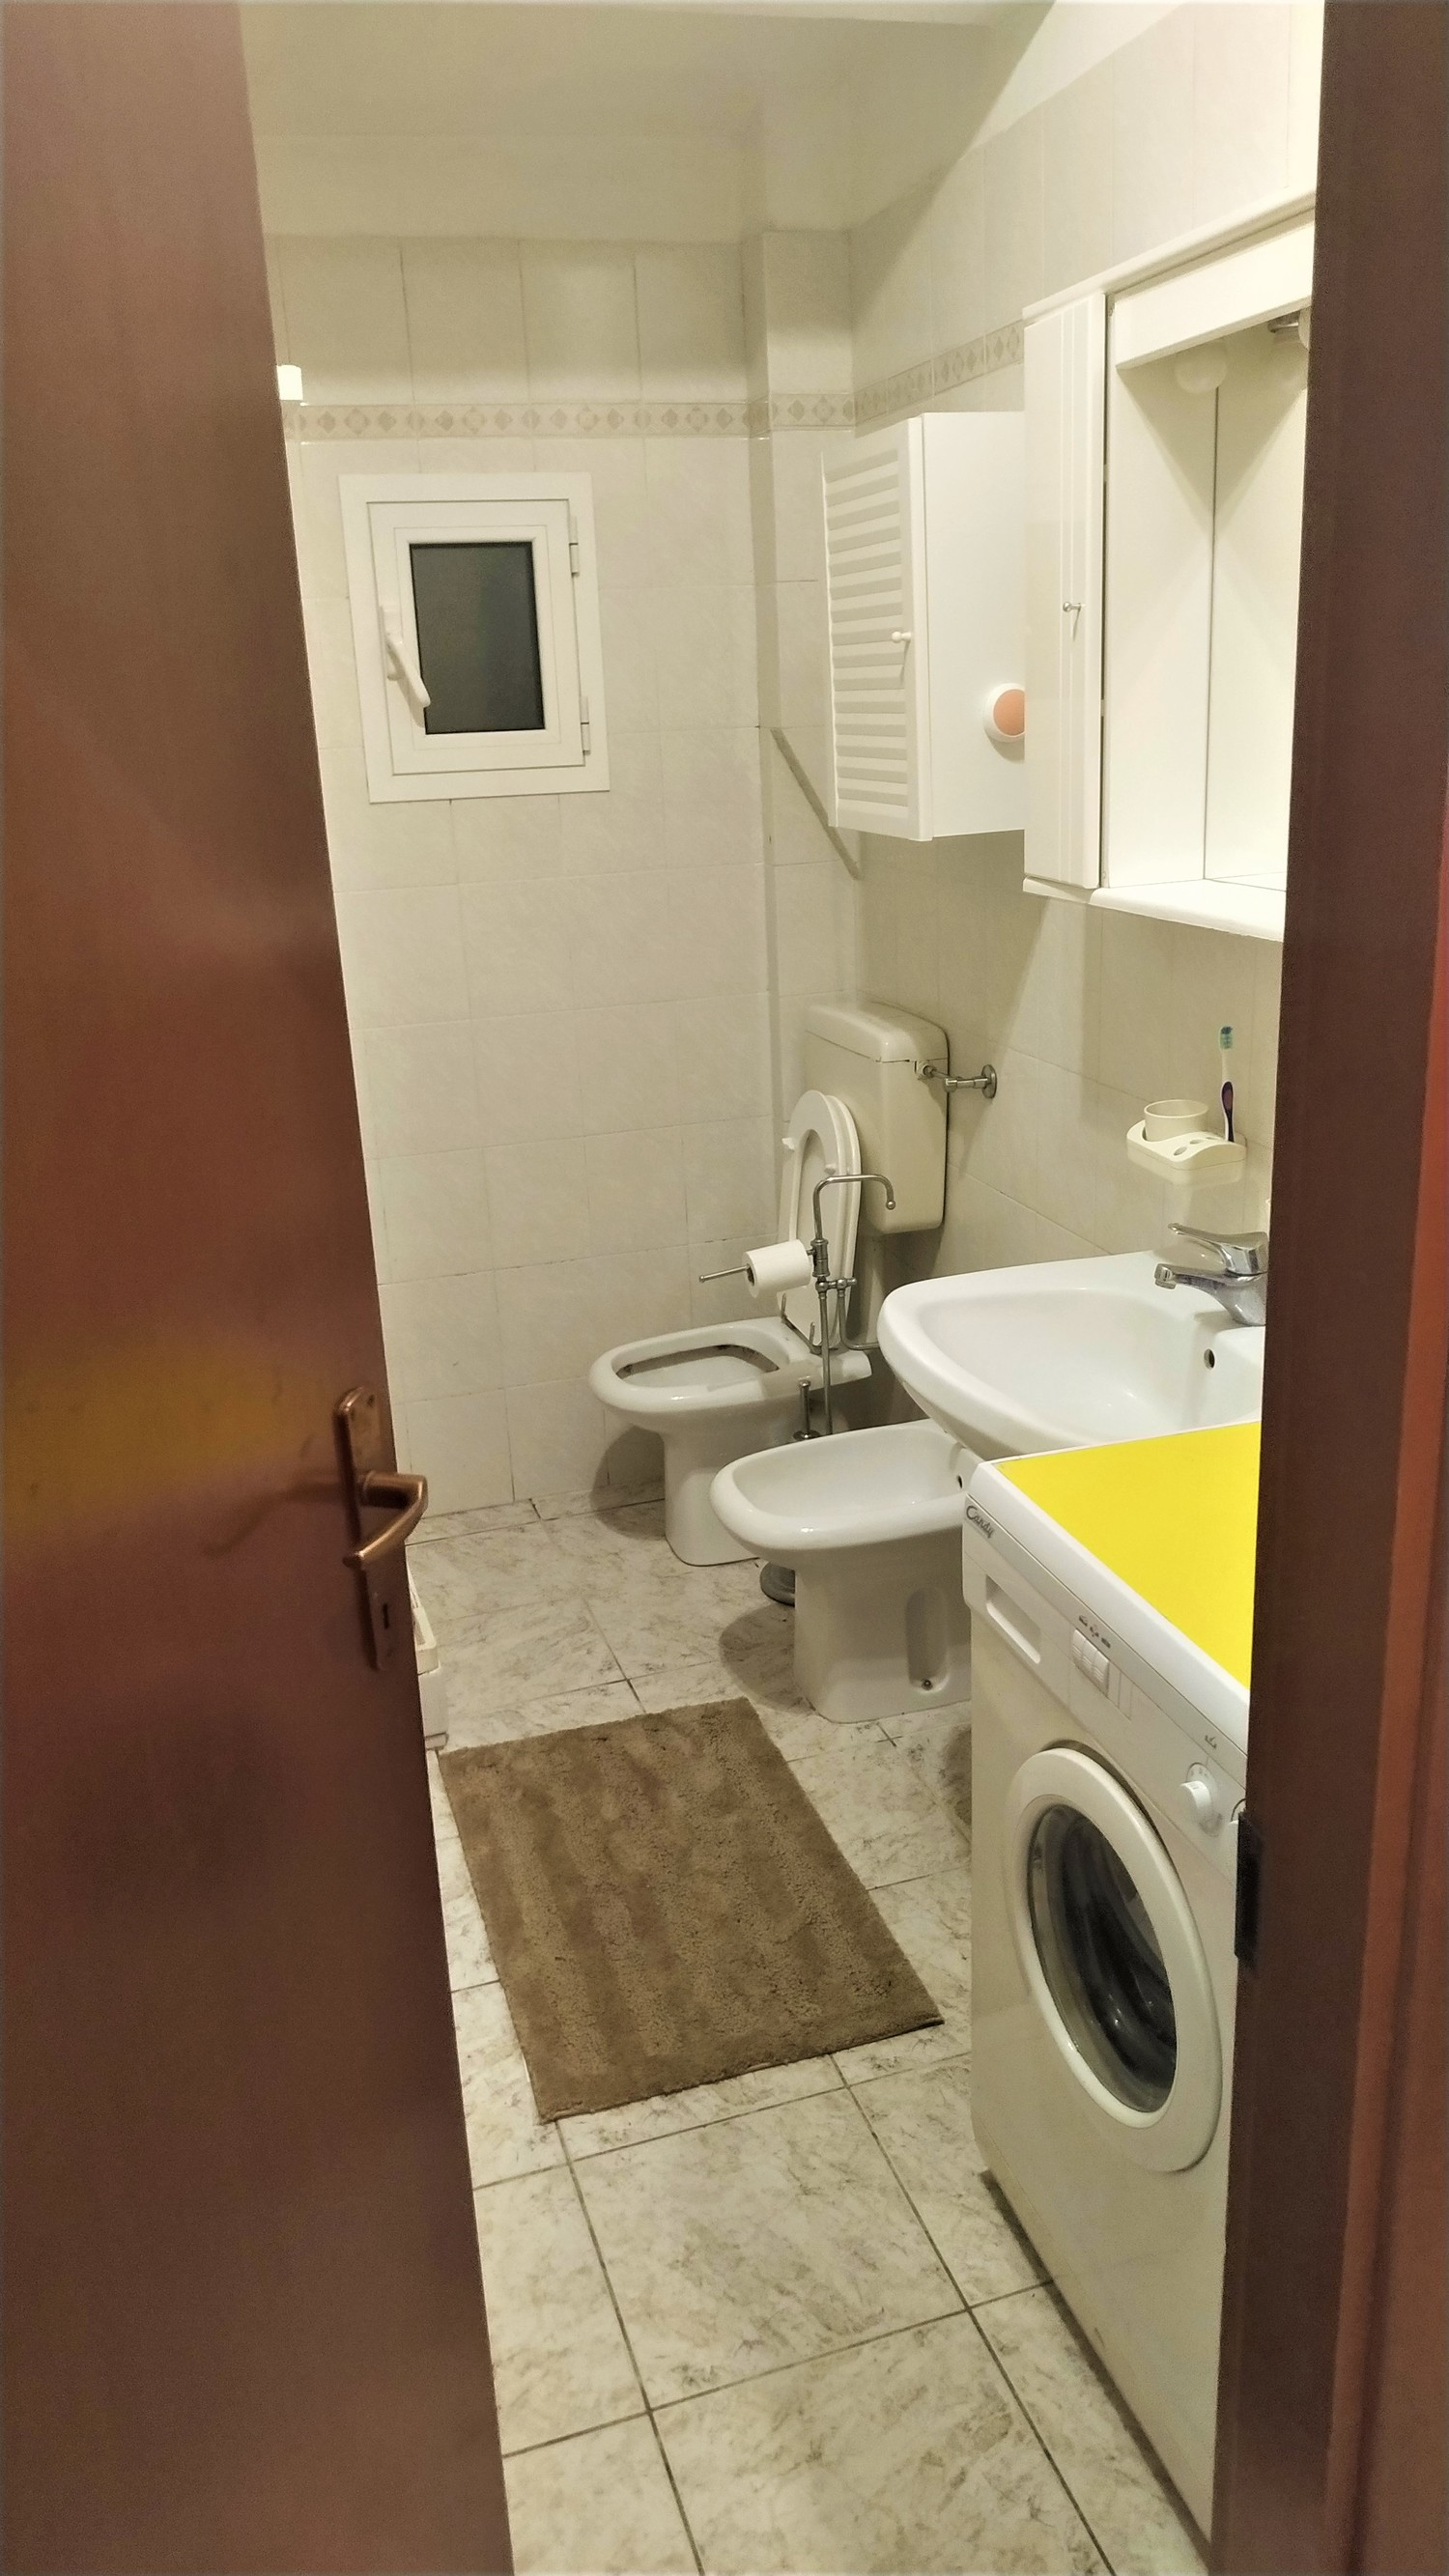 Delightful apartment to stay in historical city bologna